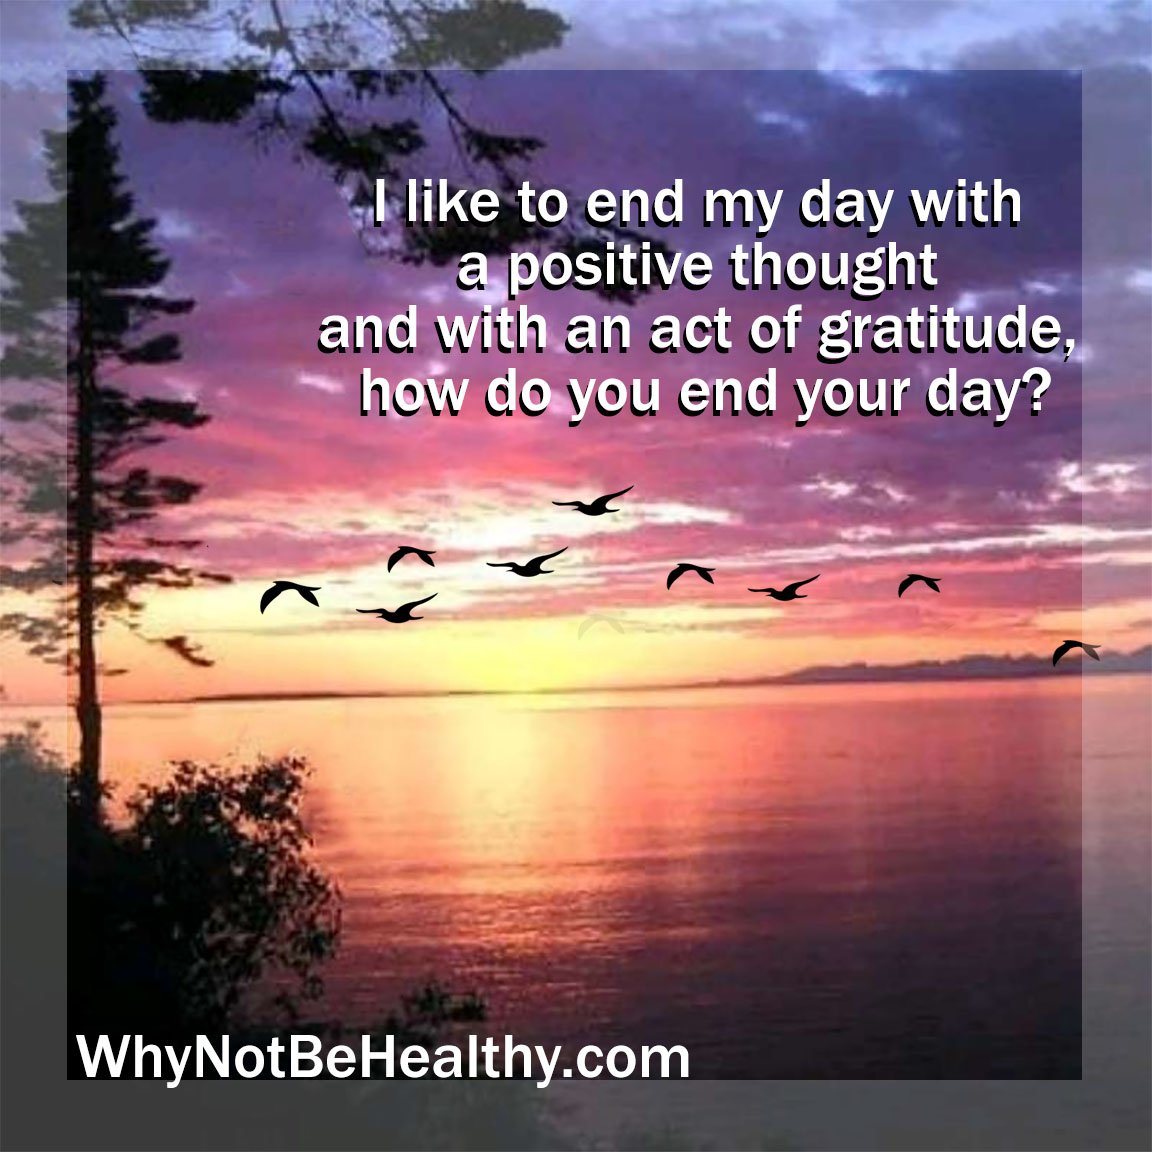 I love to end my day with a positive thought and with an act of gratitude, how do you end your day?